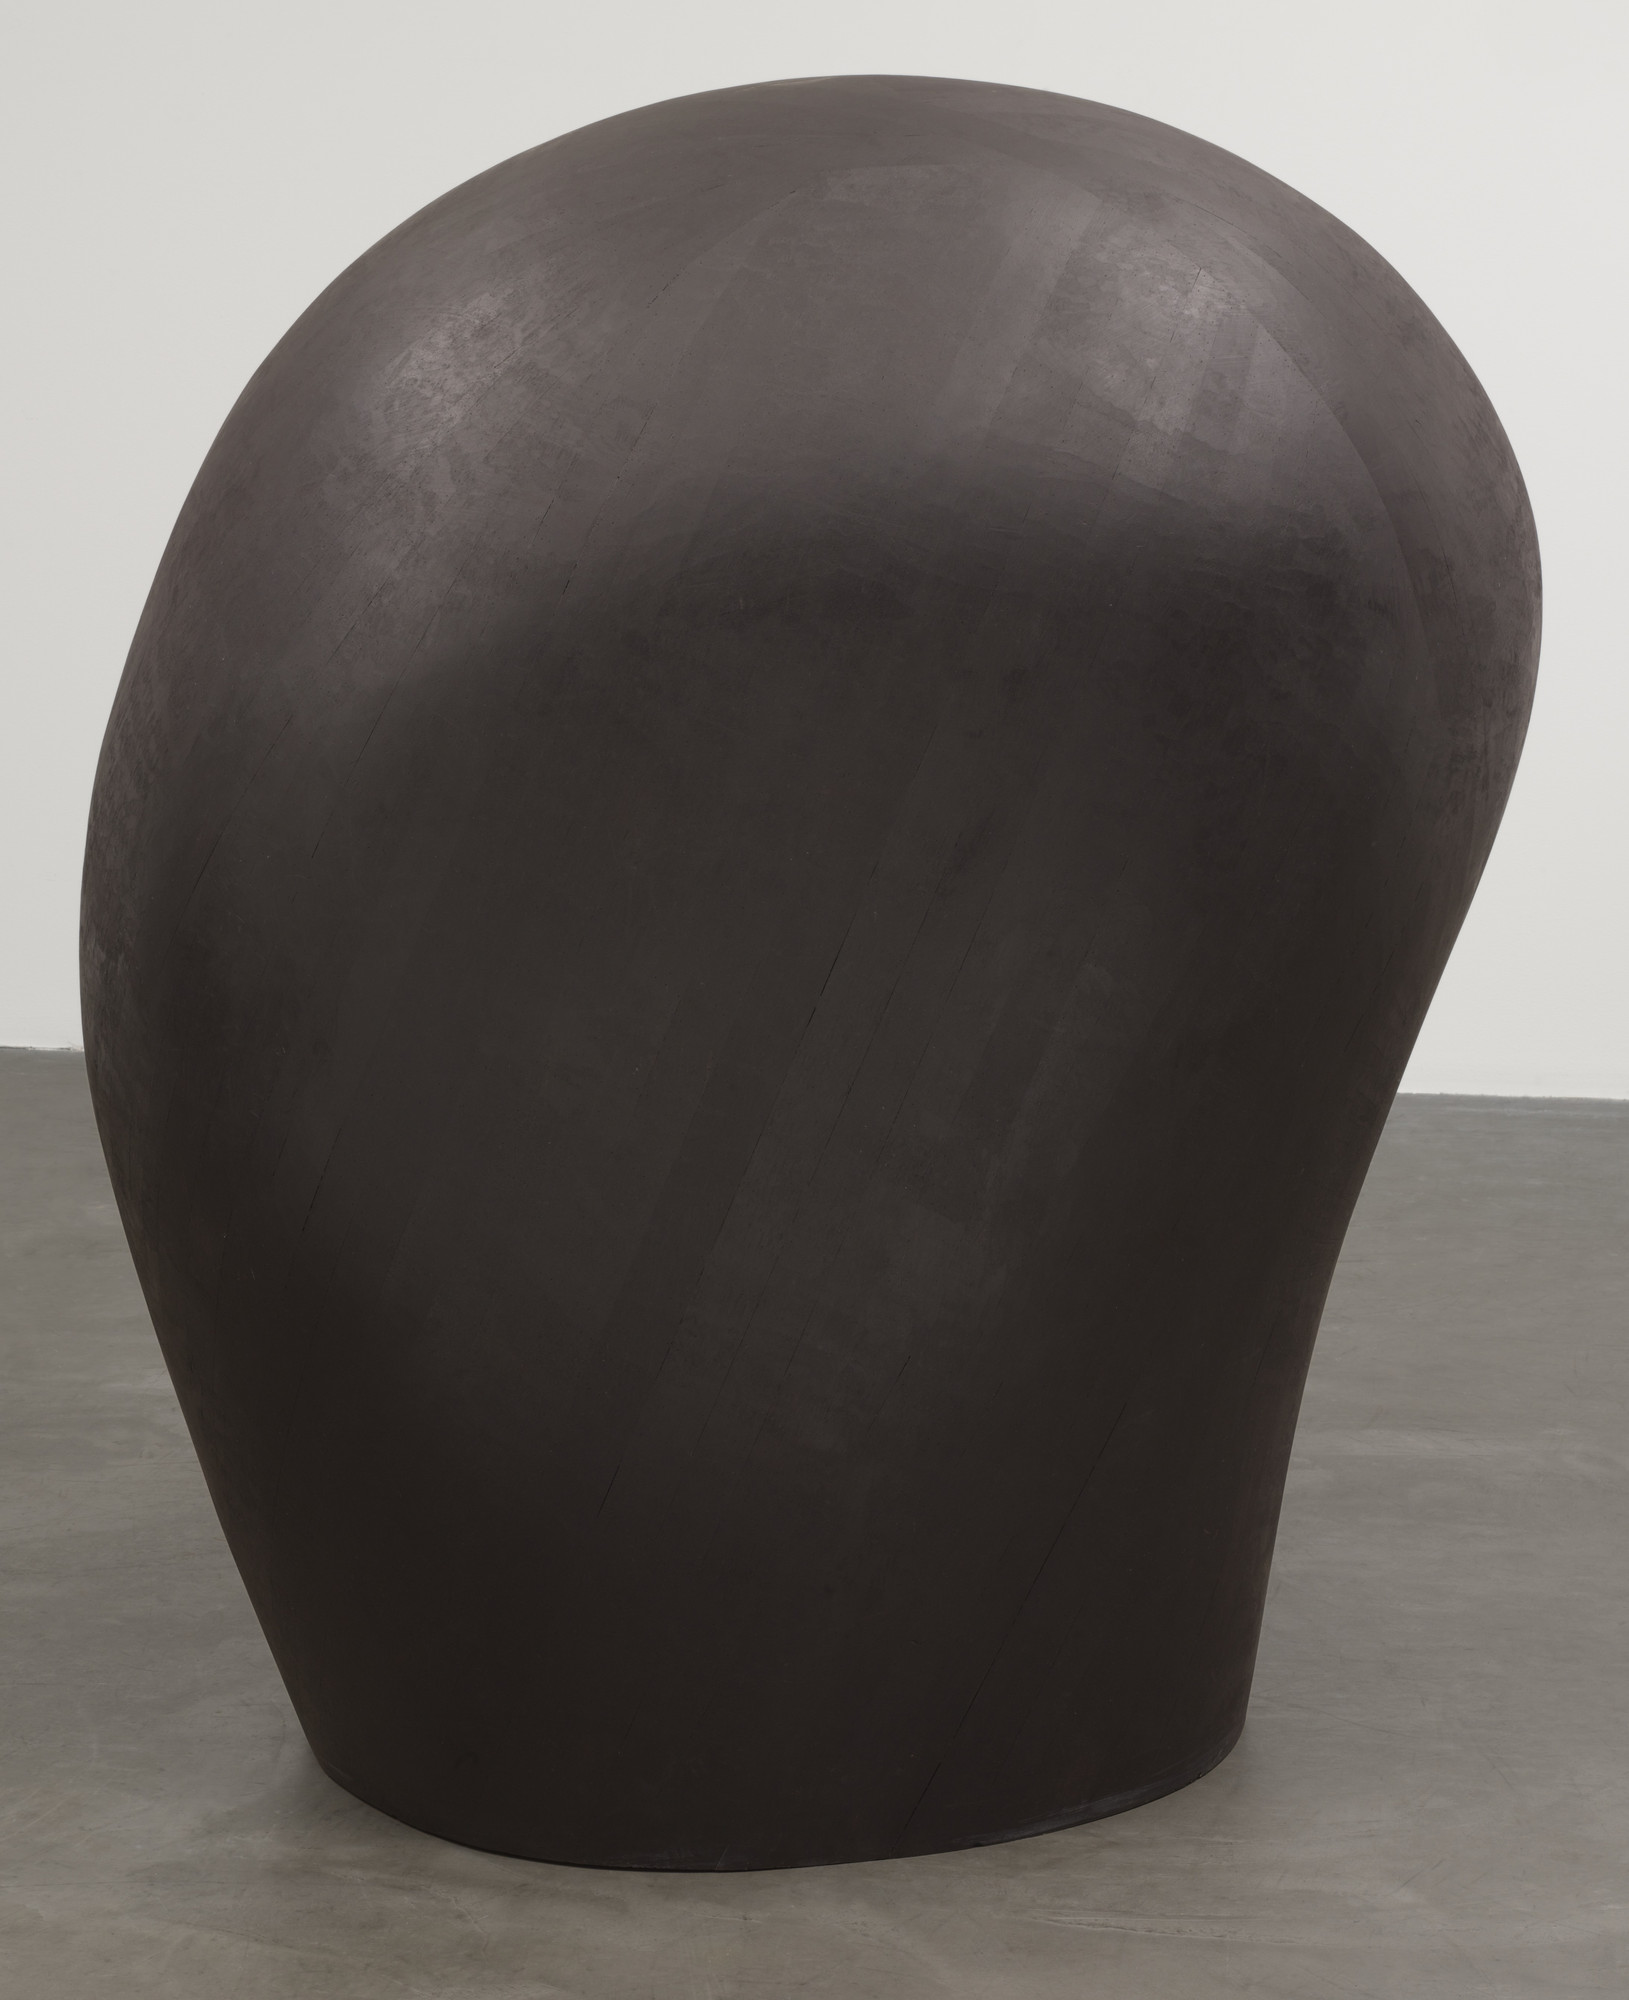 Martin Puryear. Untitled. 1997